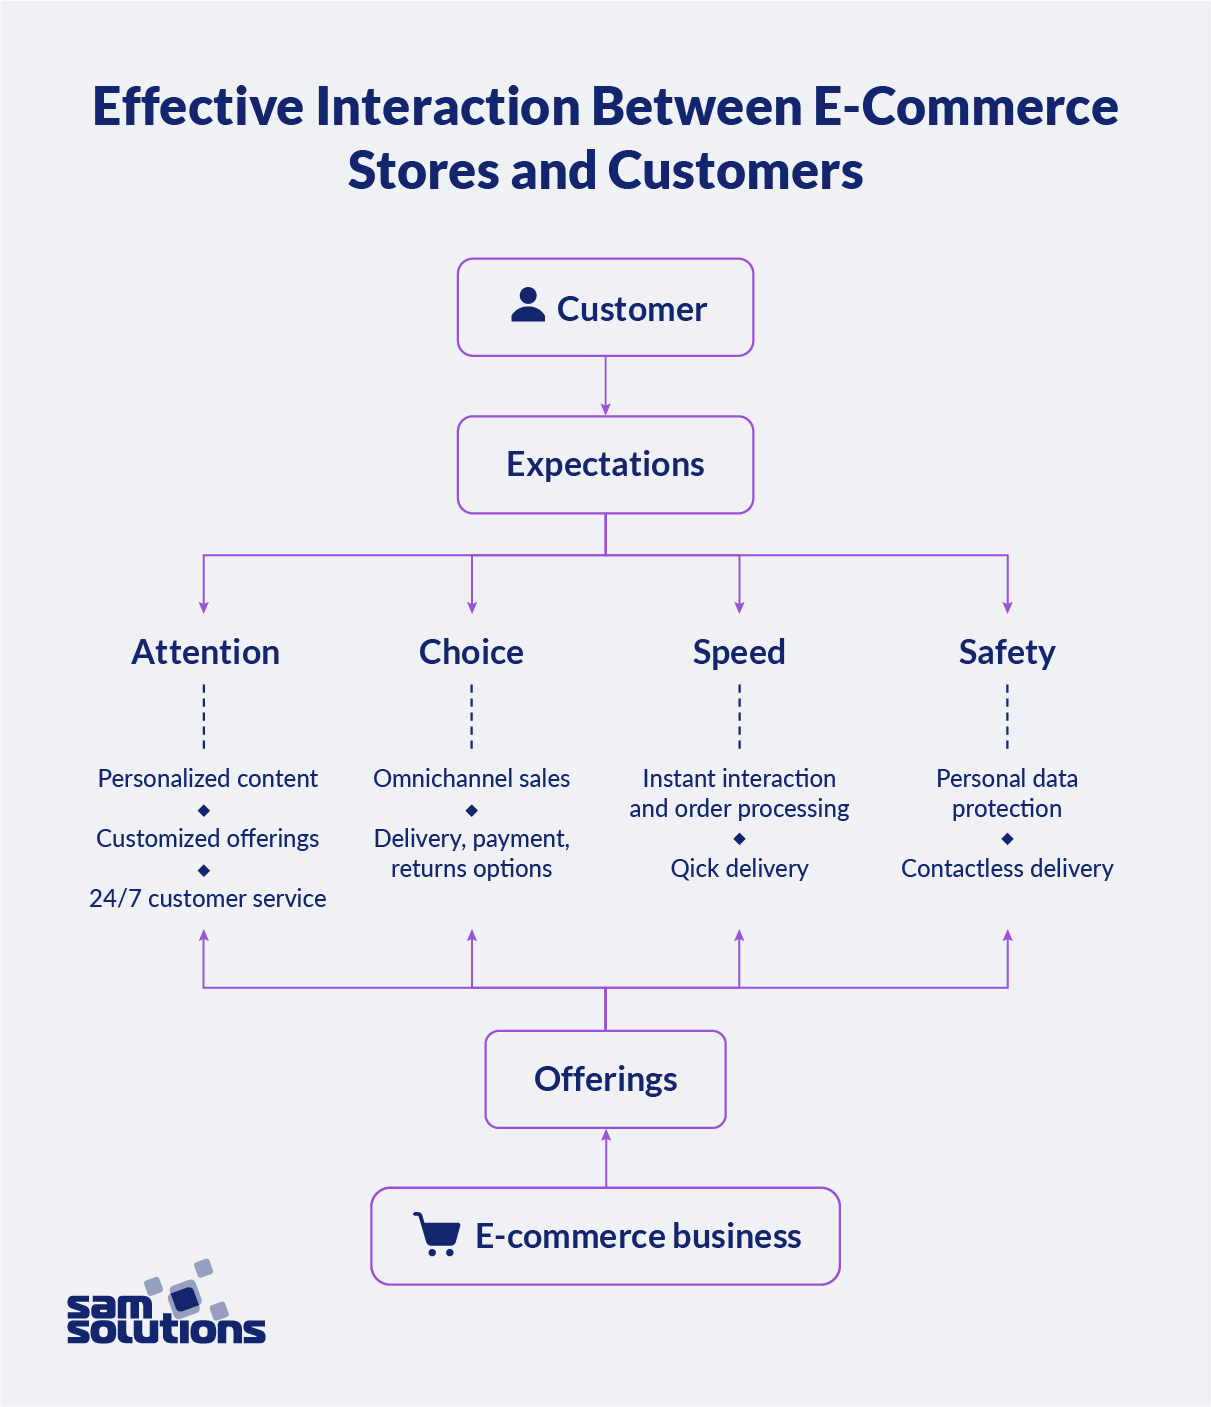 CX-and-ecommerce-interaction-image